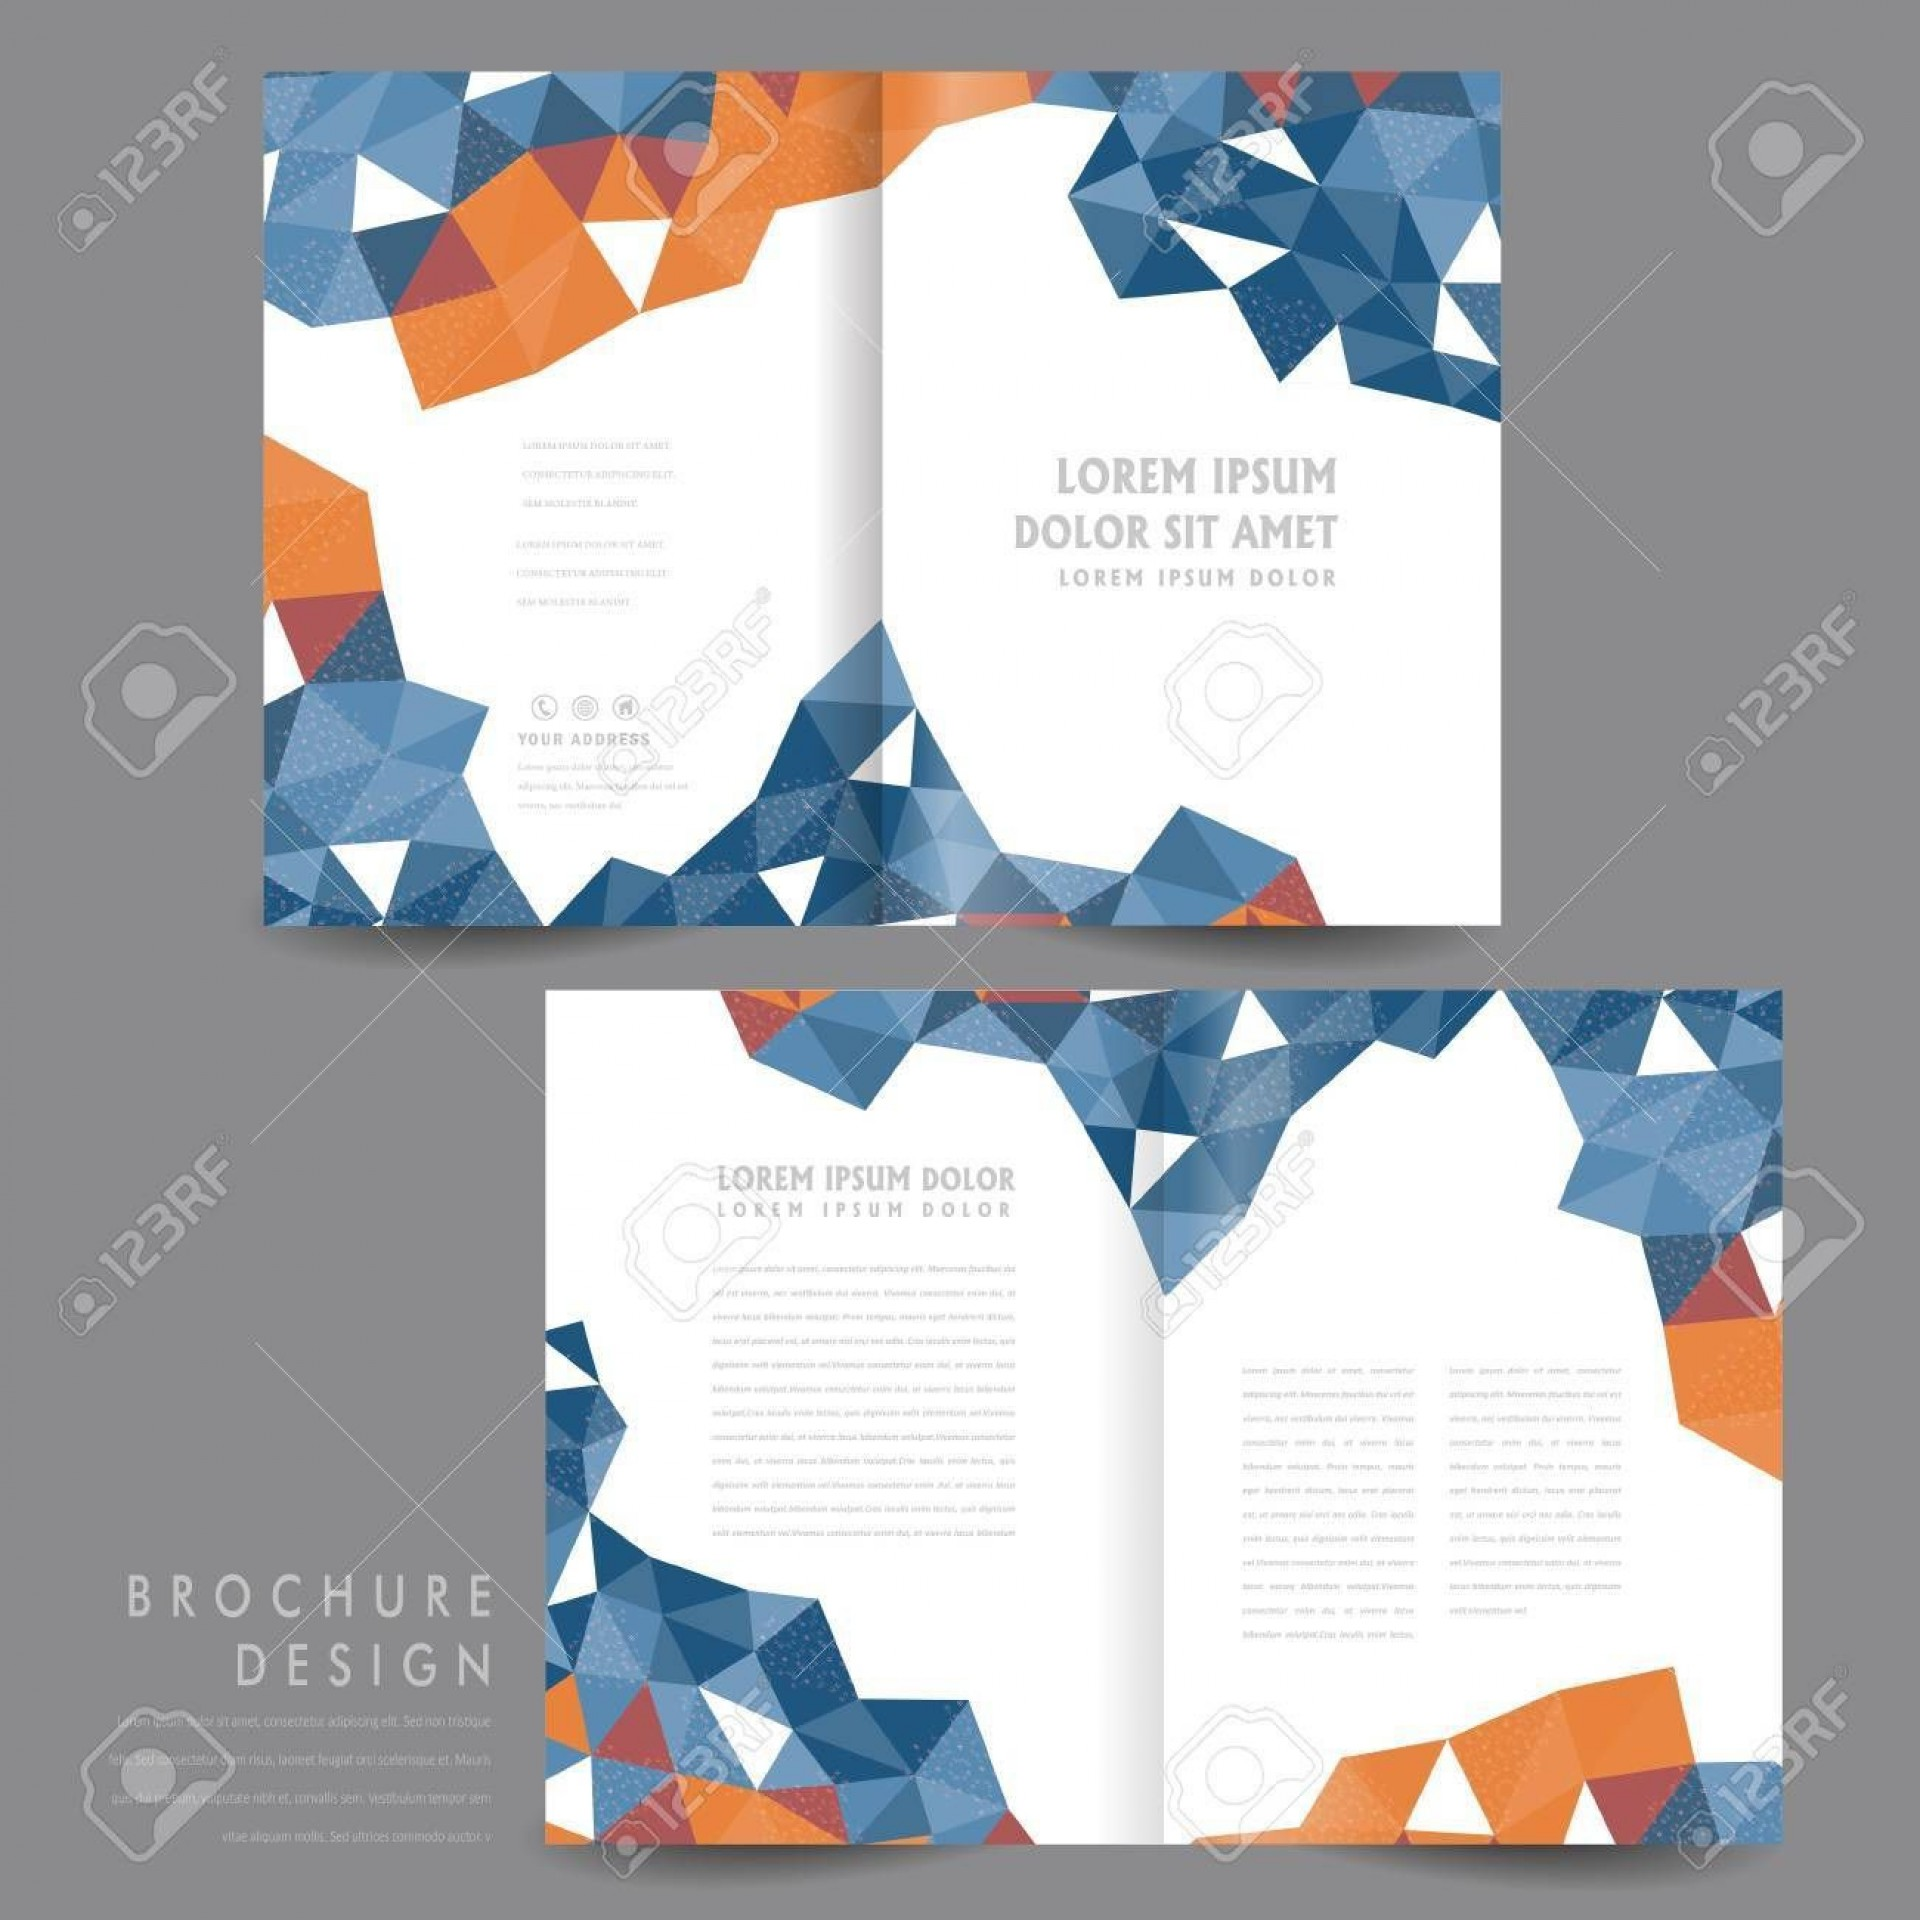 003 Astounding Half Fold Brochure Template Picture  Free Microsoft Word Indesign1920